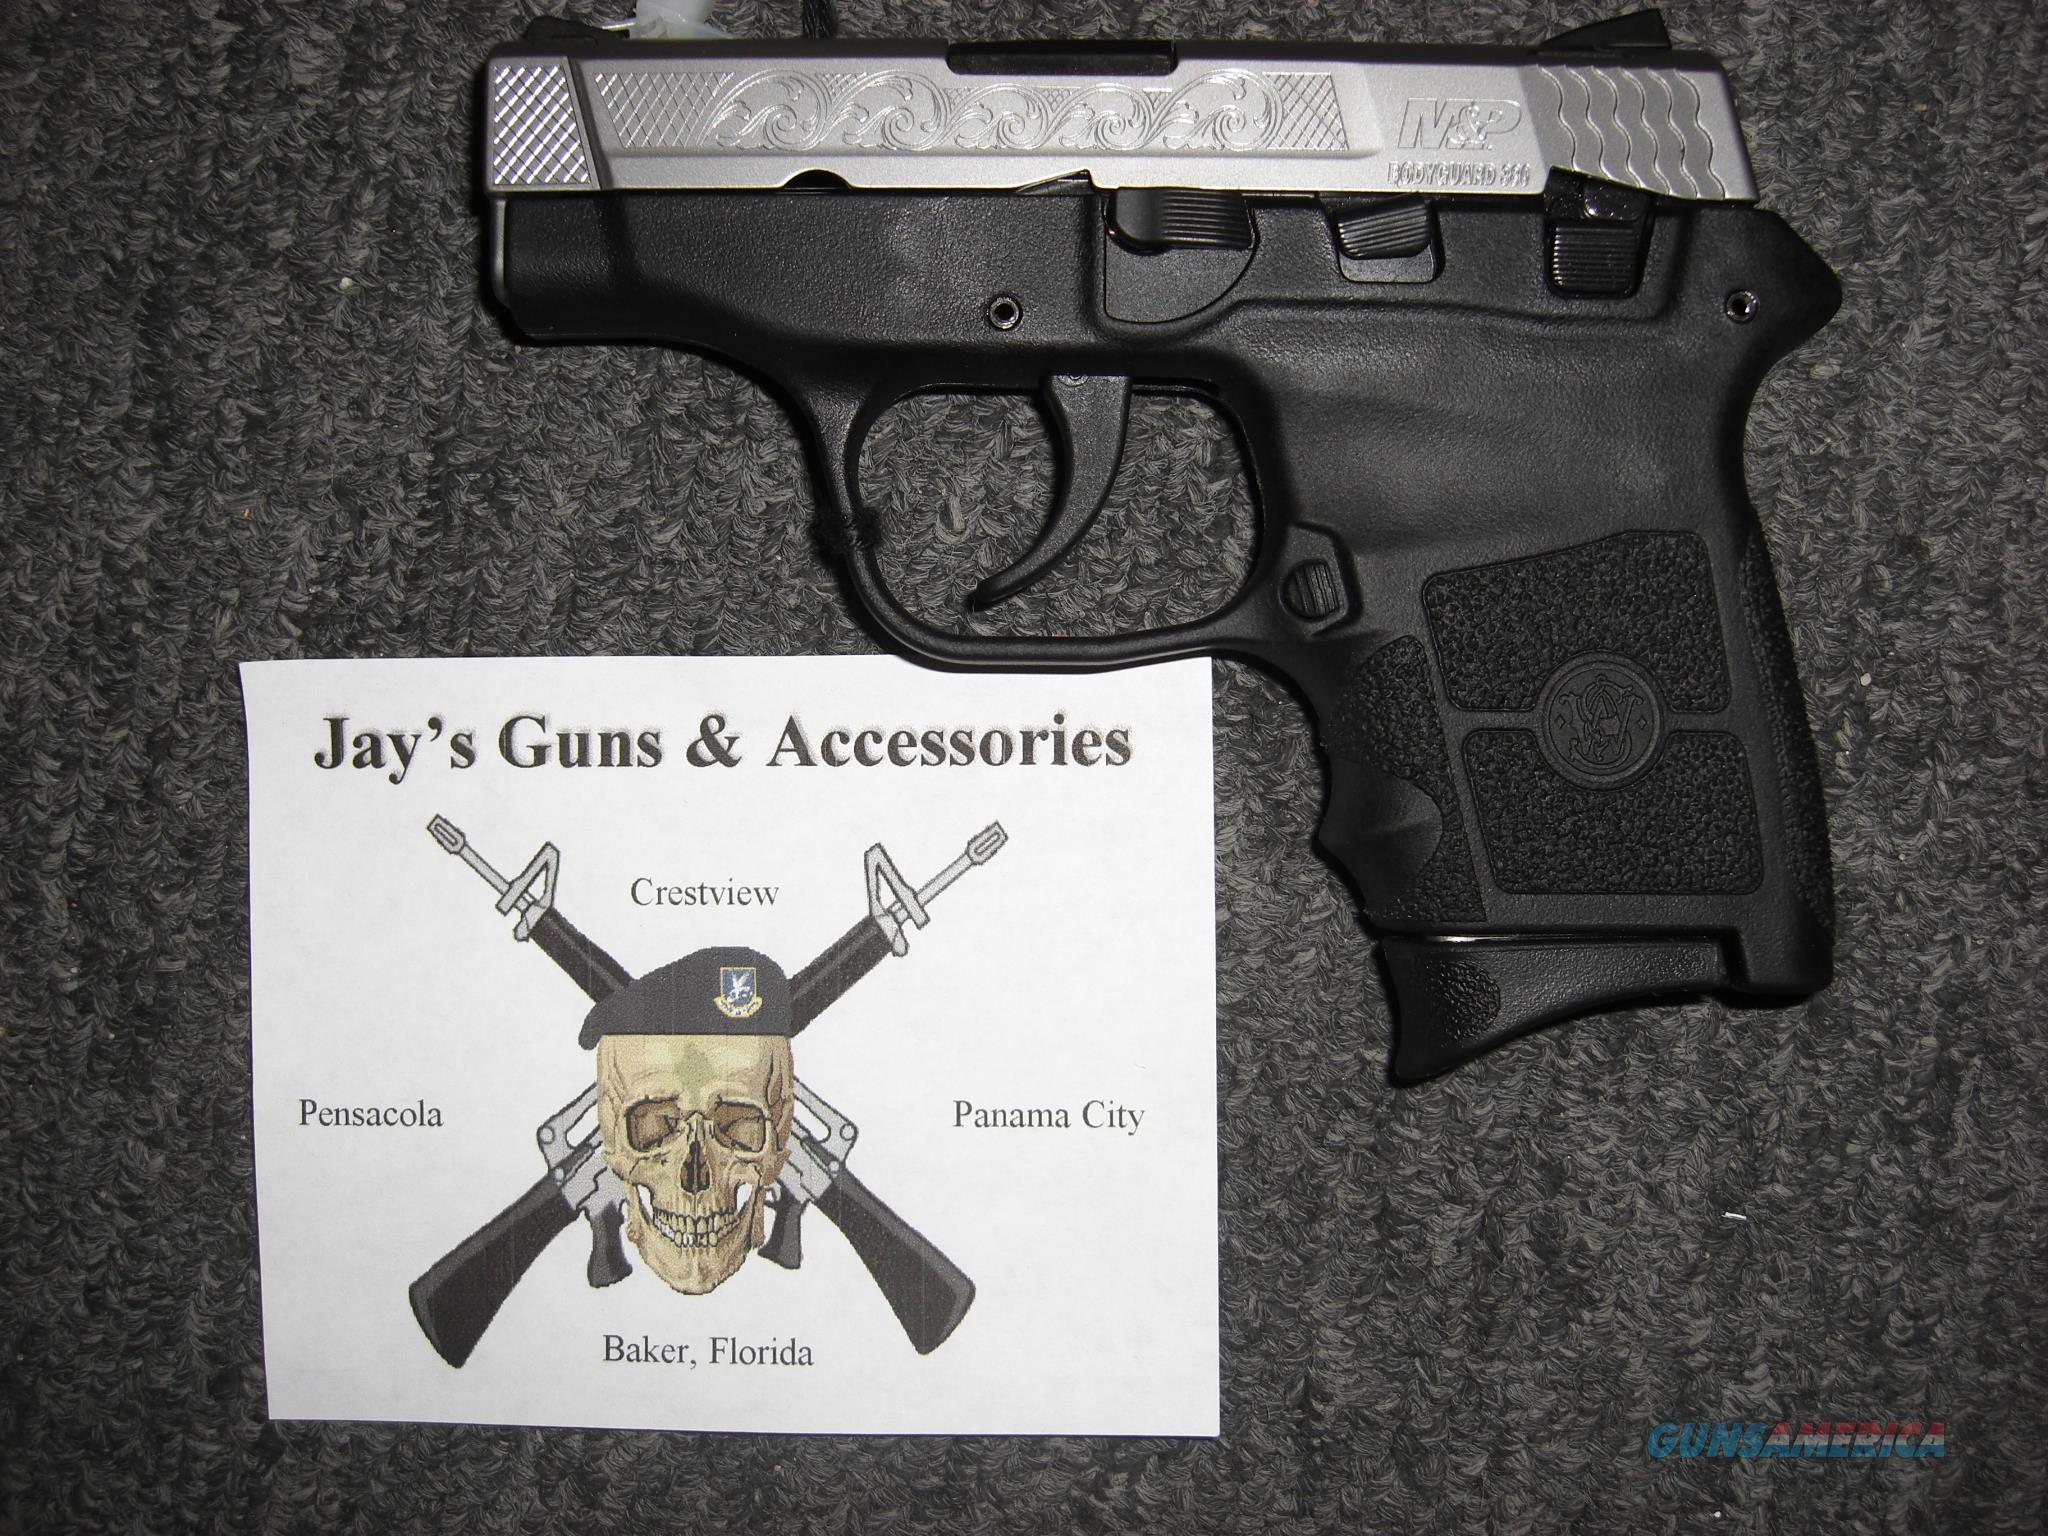 Smith & Wesson M&P Bodyguard 380 (10110) w/Engraved Slide  Guns > Pistols > Smith & Wesson Pistols - Autos > Polymer Frame